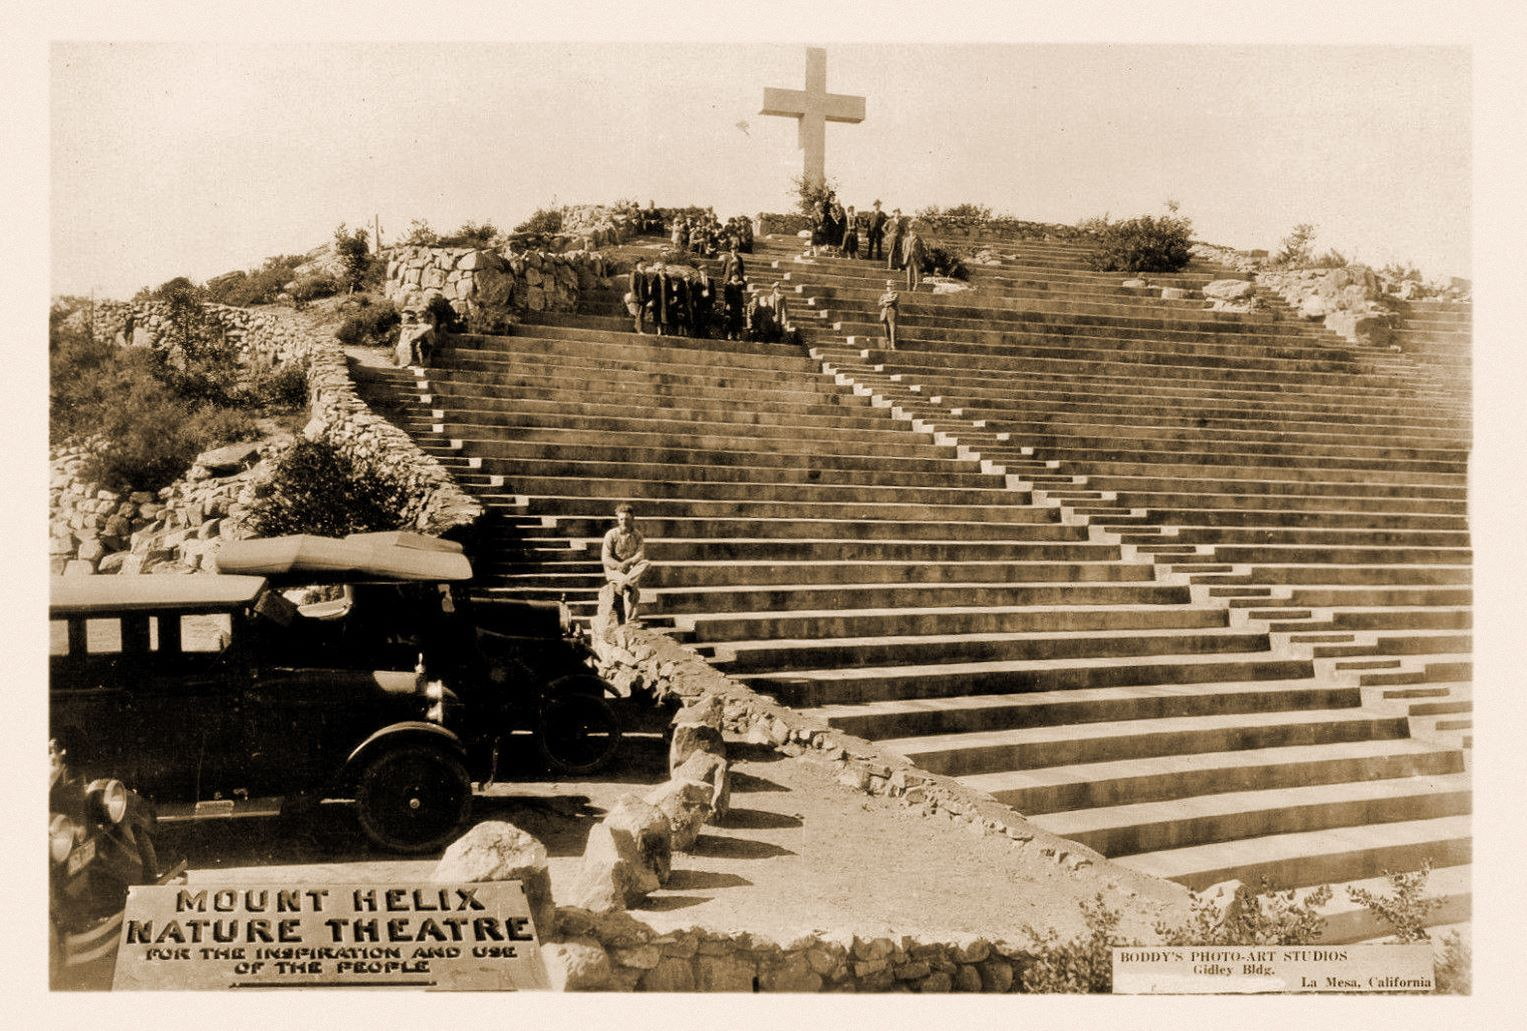 Mount helix 1920s old photos san diego favorite places